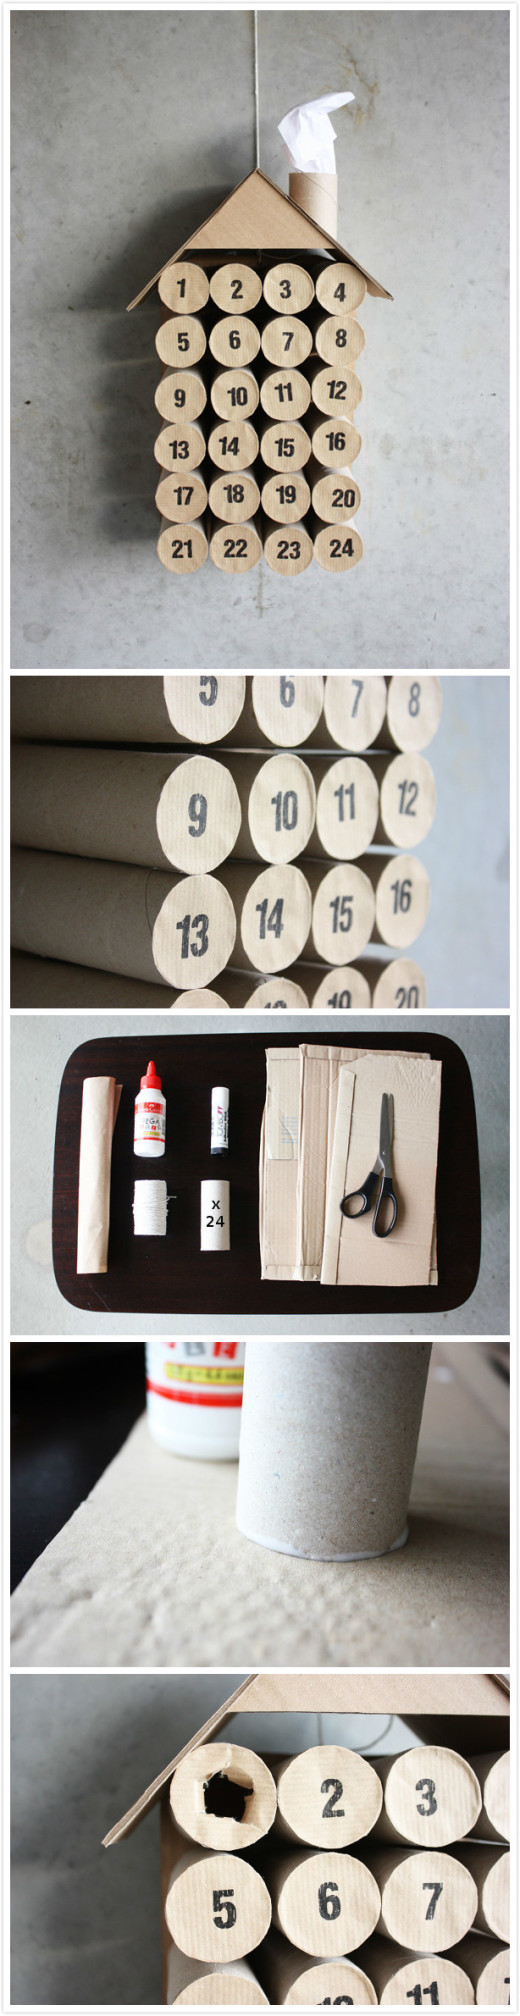 DIY Toilet Paper Roll Christmas Calendar | Reuse from MorningCreativity